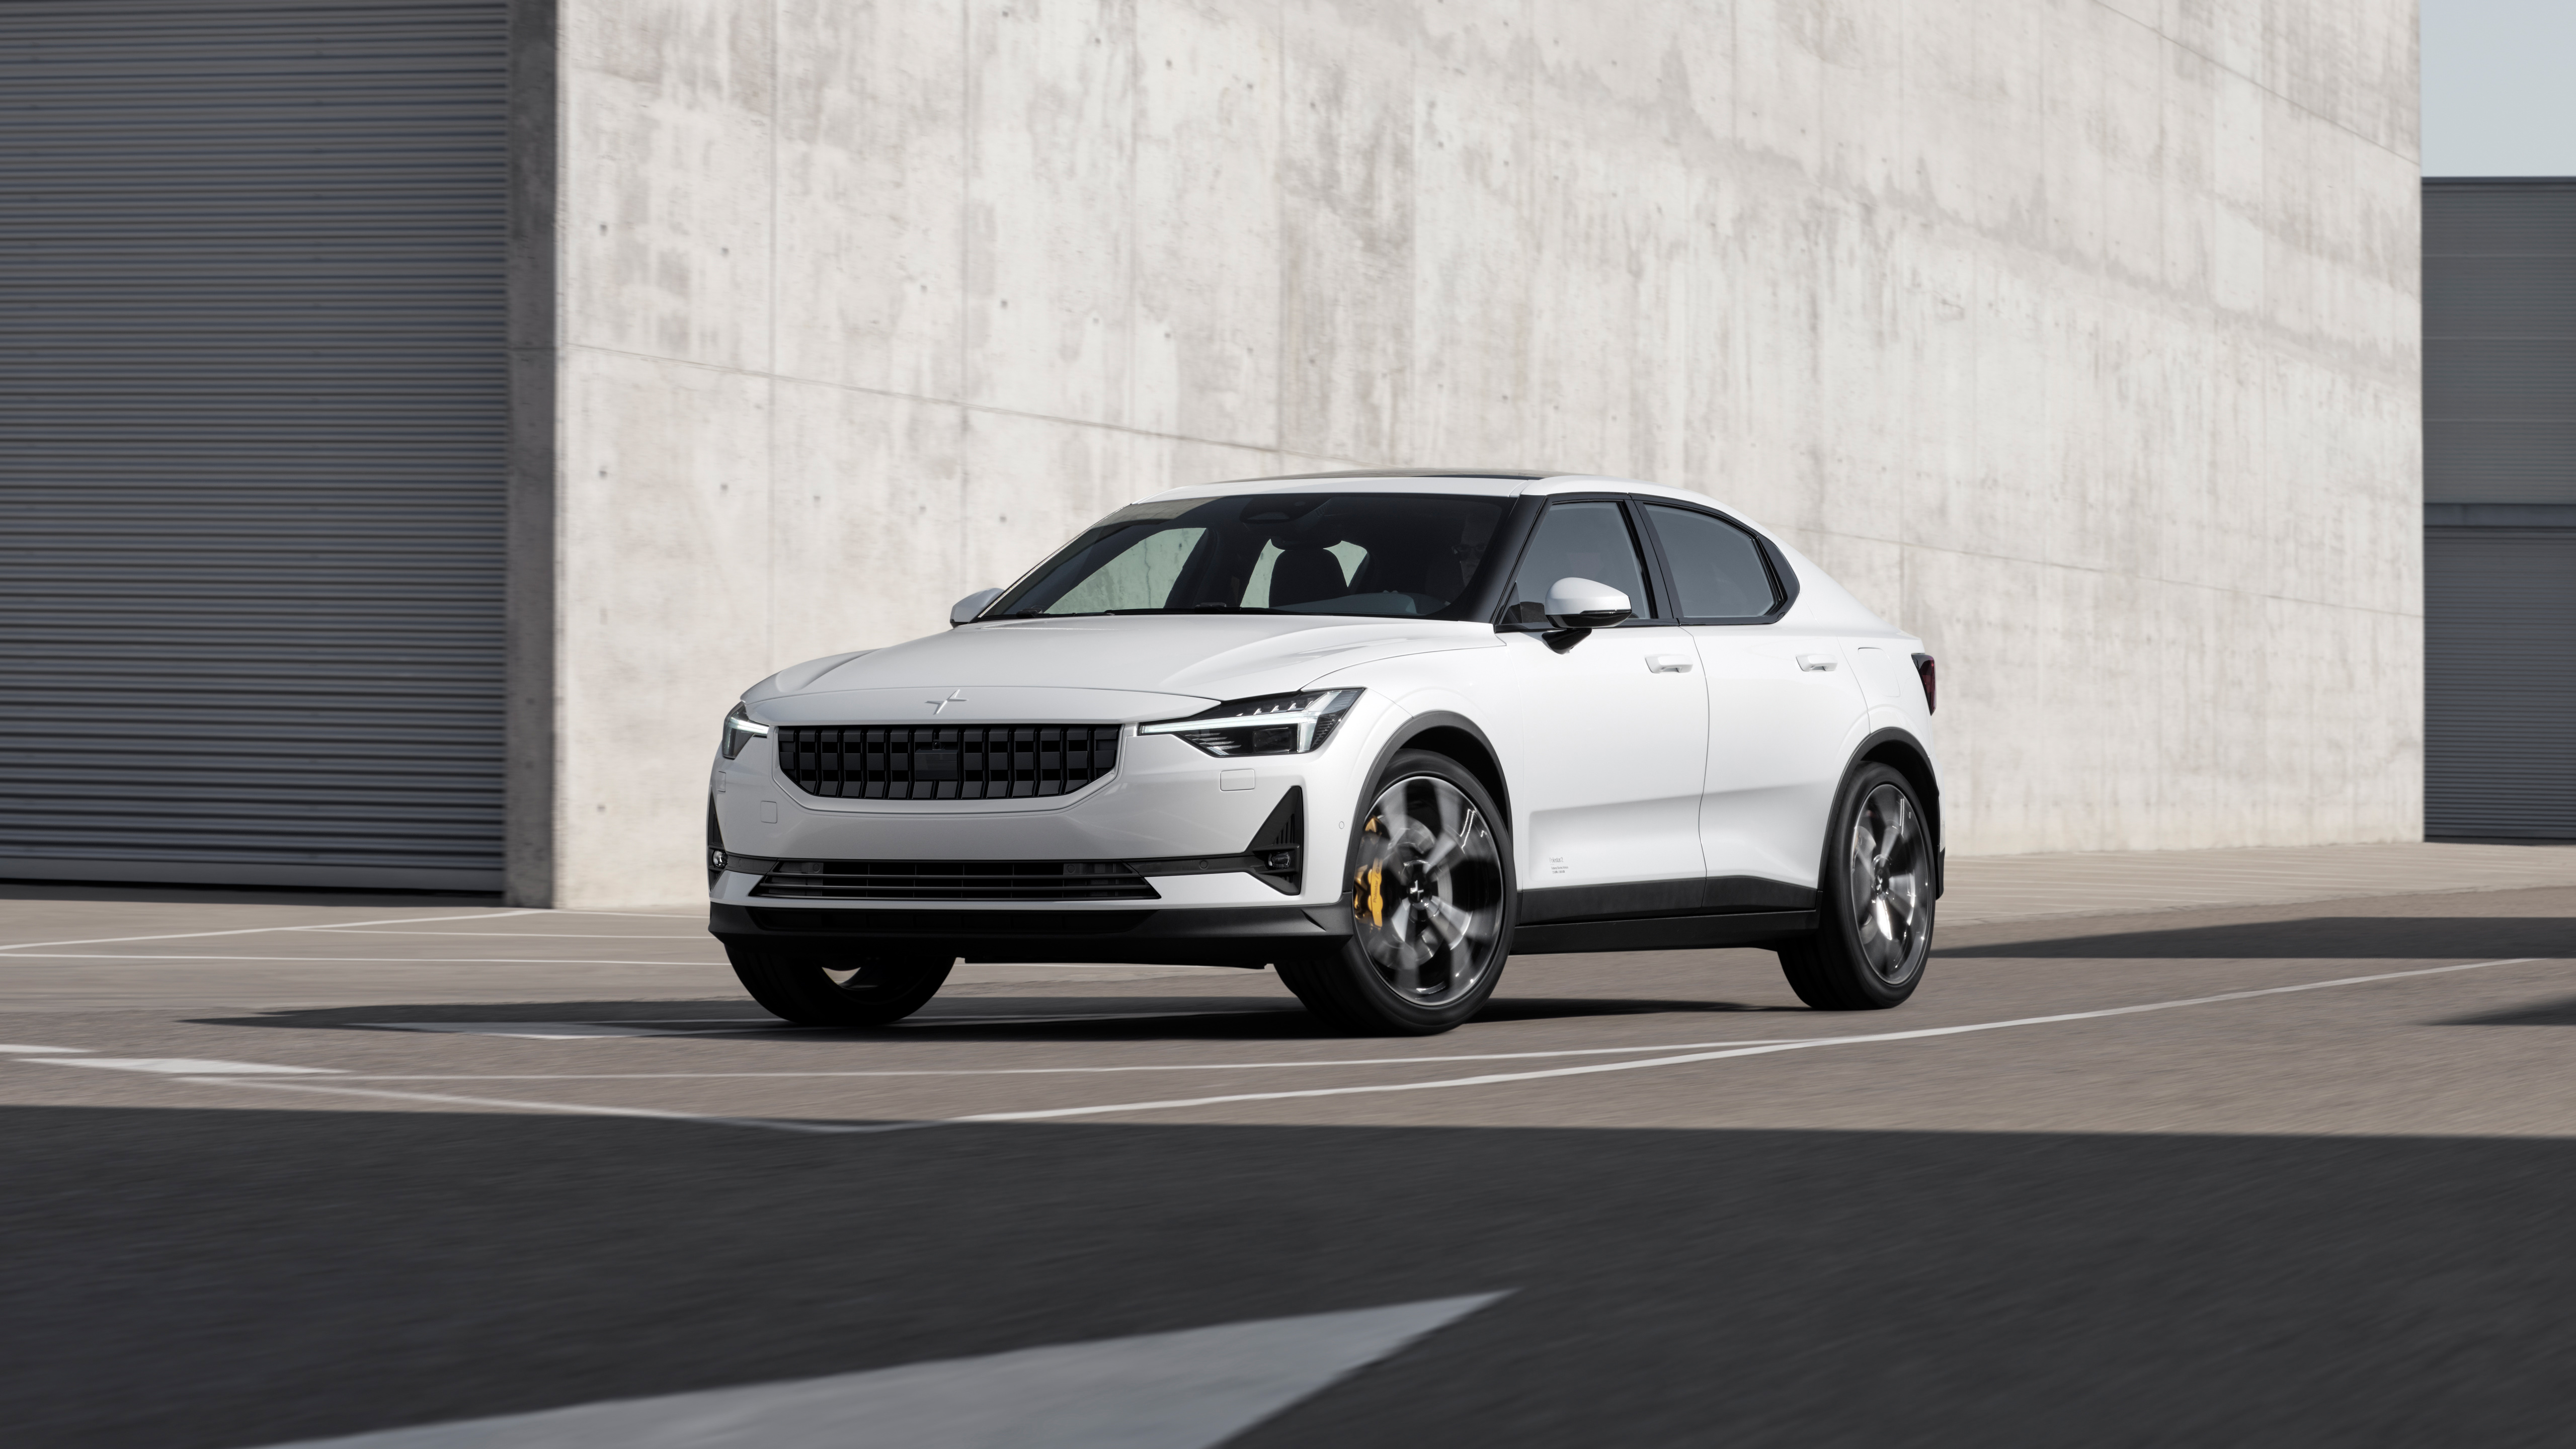 Polestar 2 2019 5K 2 Wallpaper HD Car Wallpapers ID 12056 5120x2880